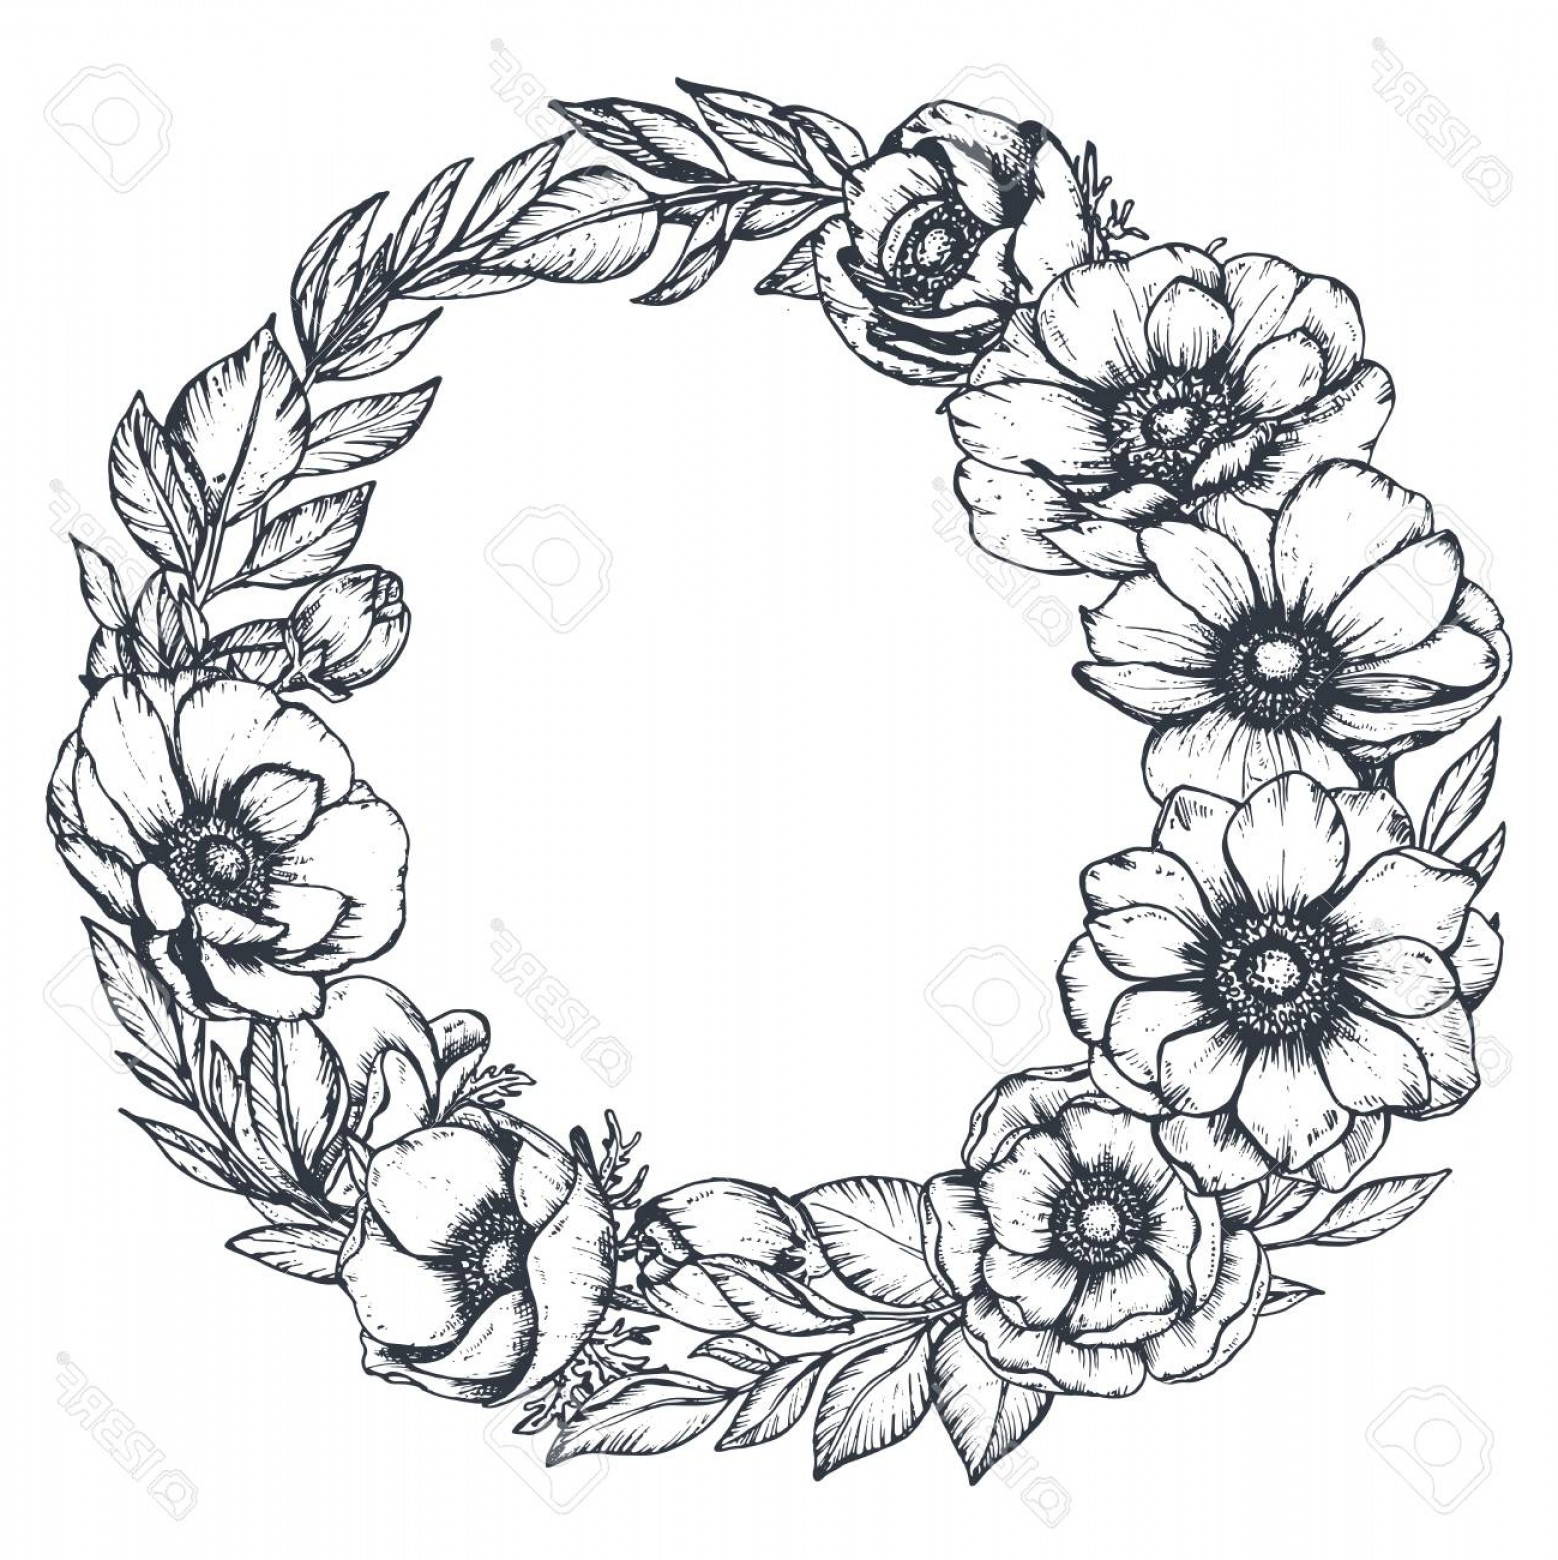 Vector Flower Wreaths In Black: Photostock Vector Vector Black And White Floral Wreath Of Hand Drawn Anemone Flowers